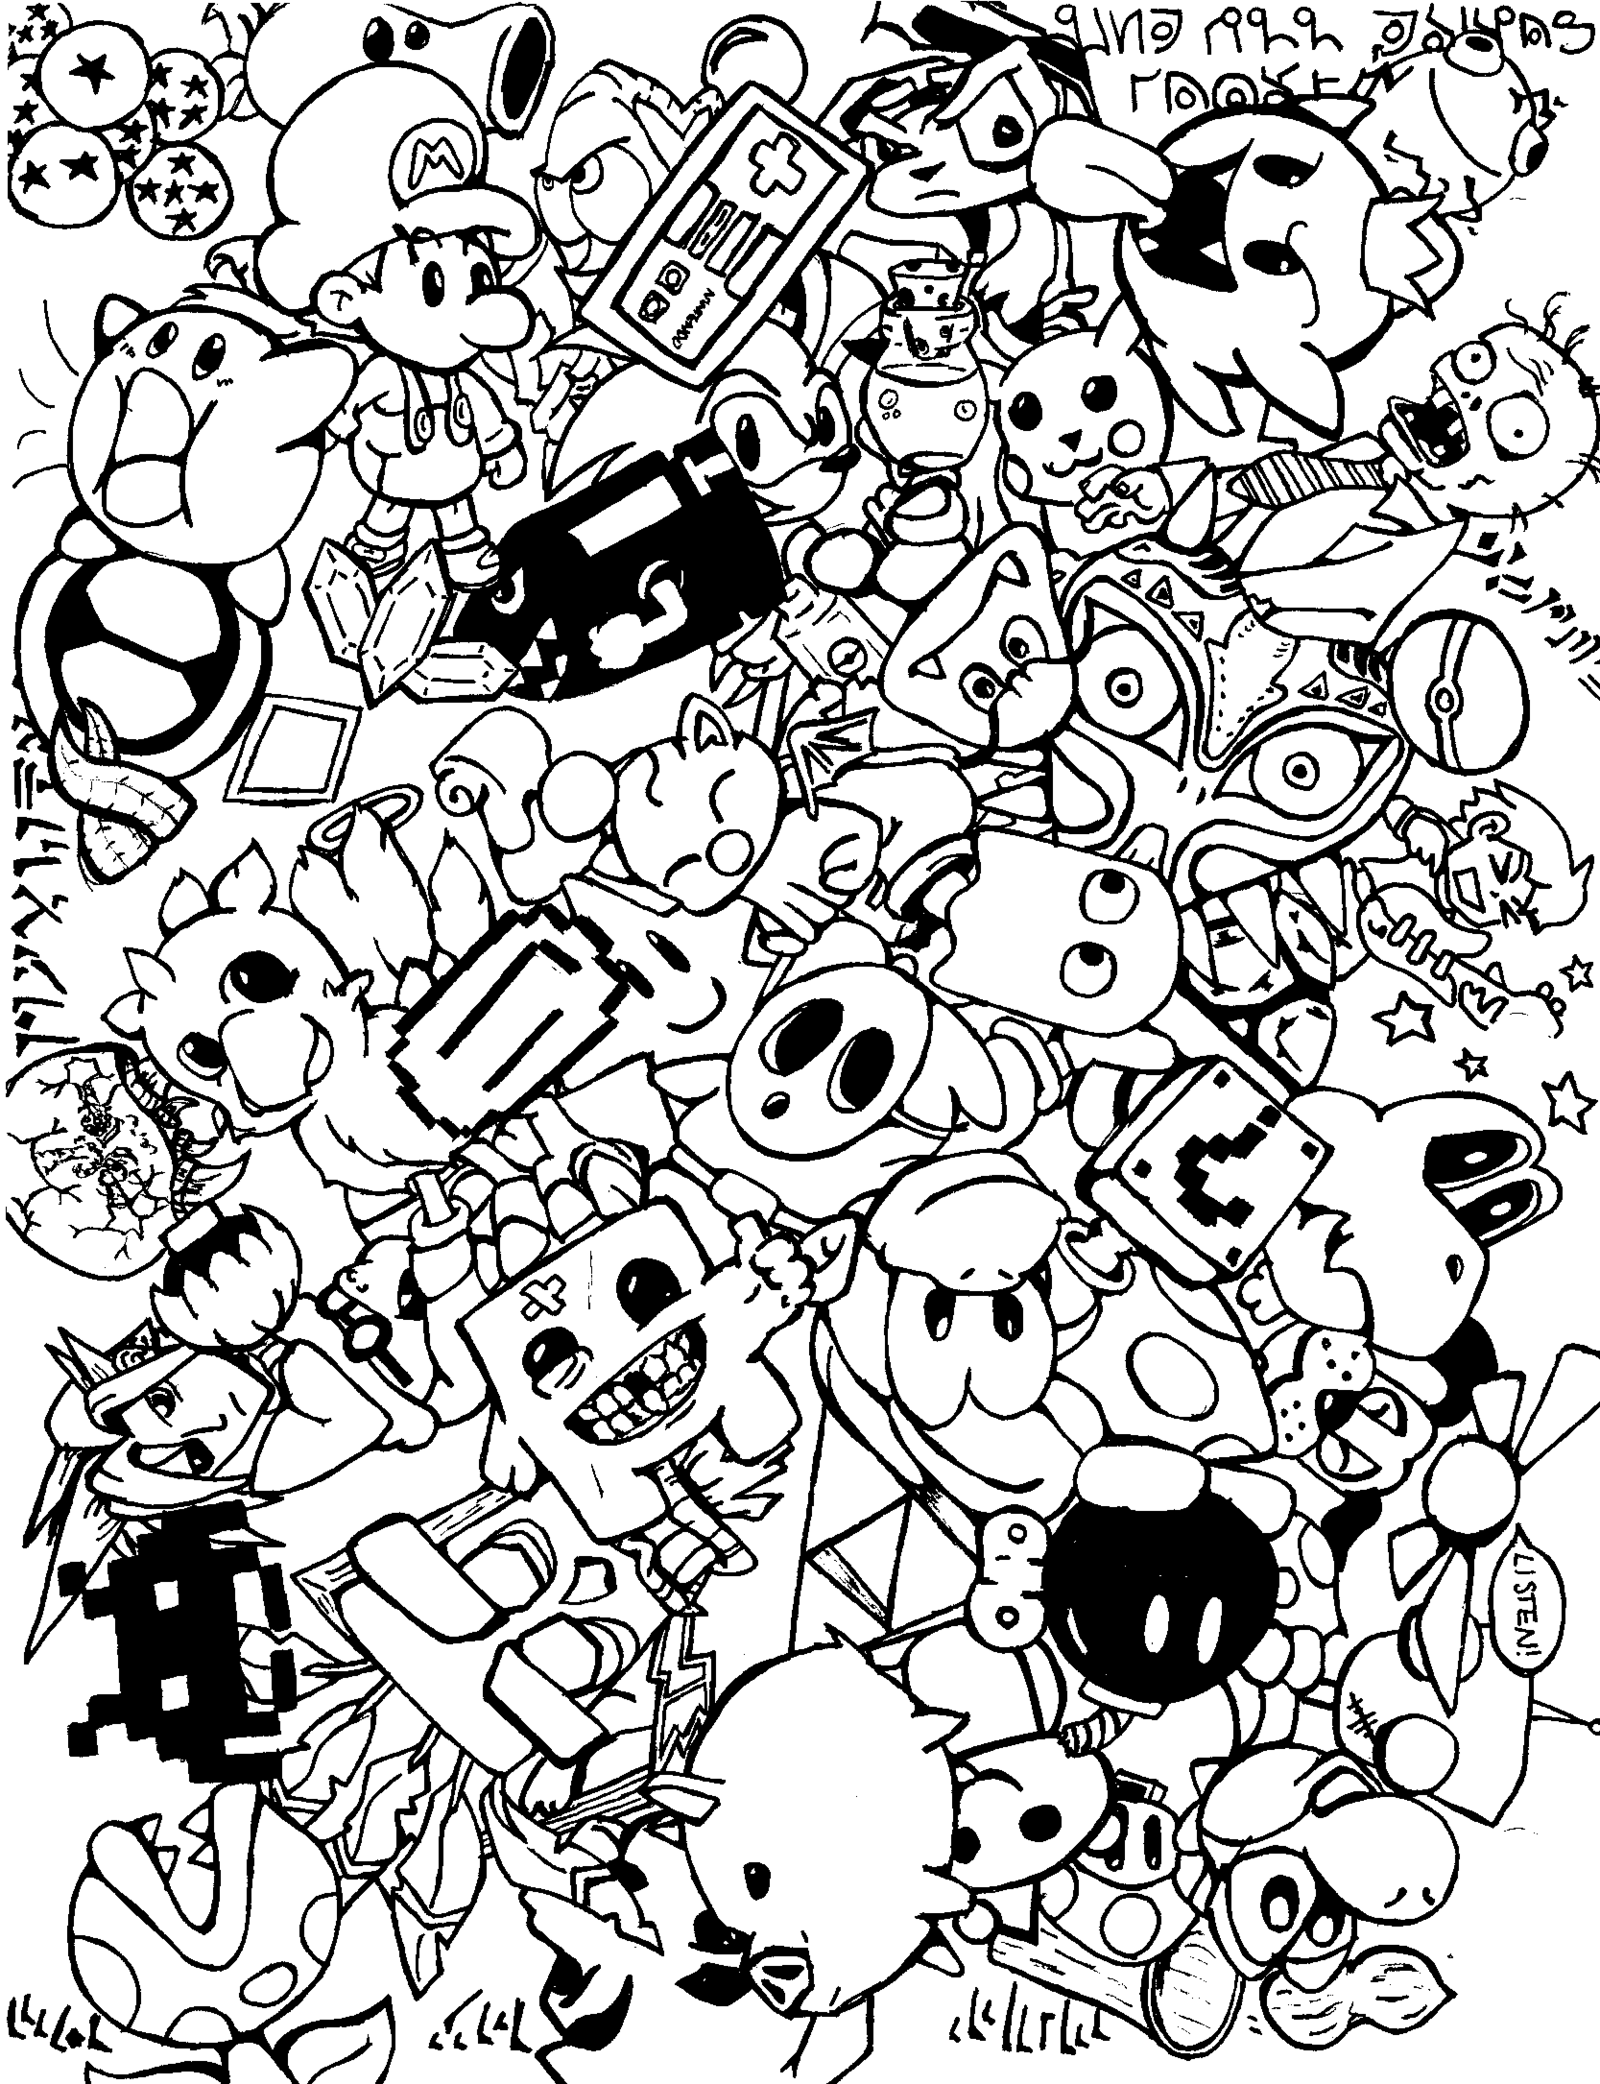 Gaming Doodle By Kayle619 Adult Coloring Pages Doodle Coloring